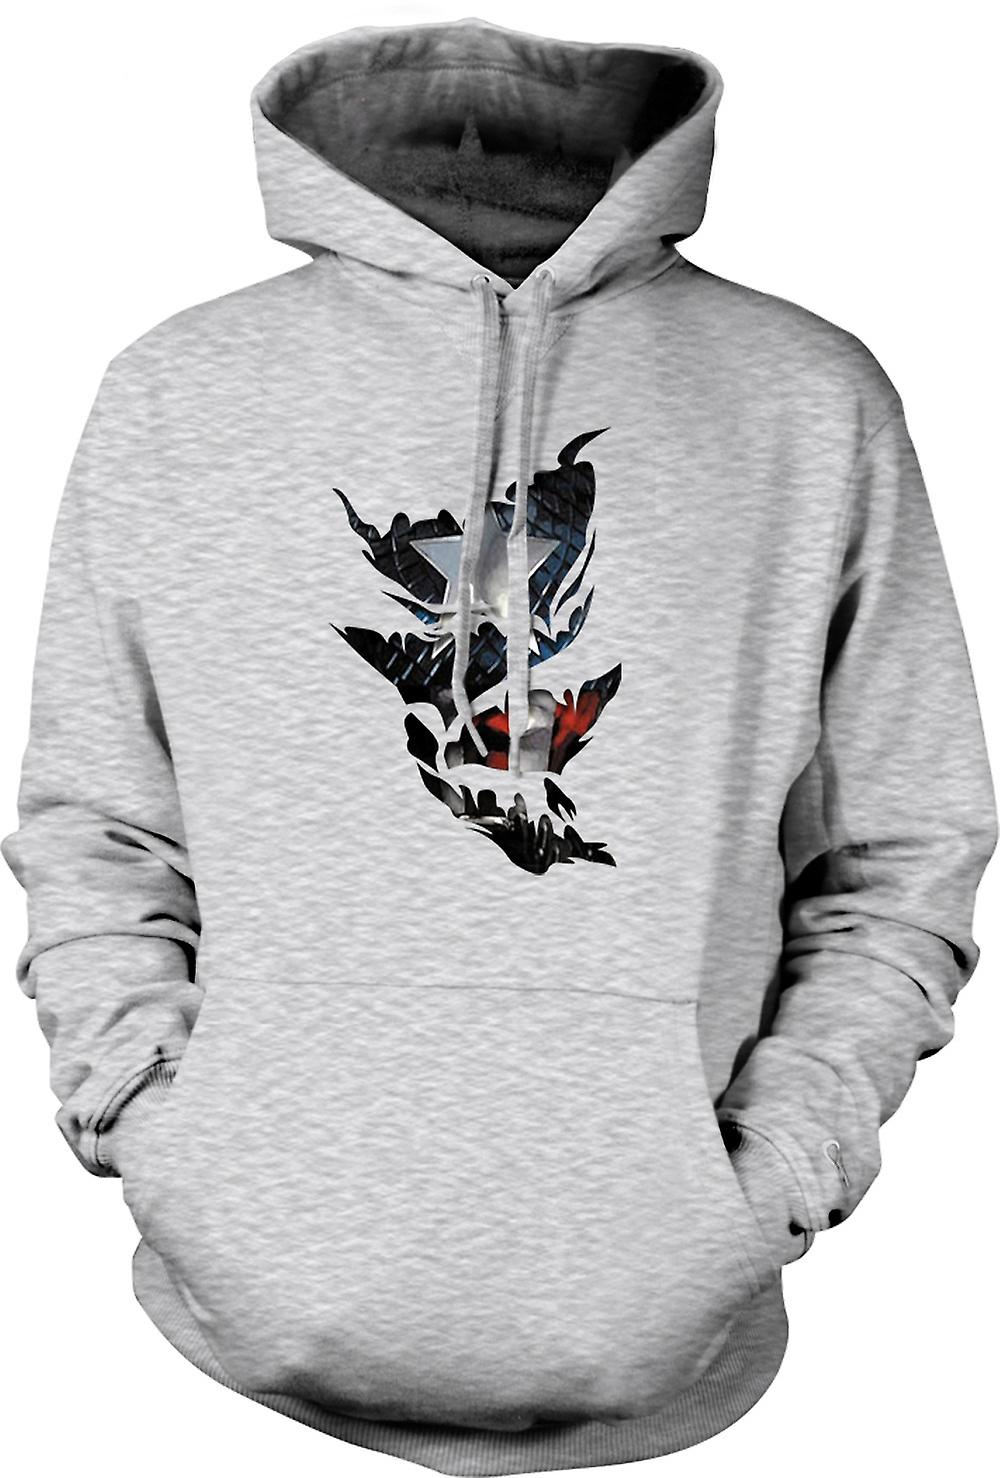 Mens Hoodie - Captain America - Ripped Effect